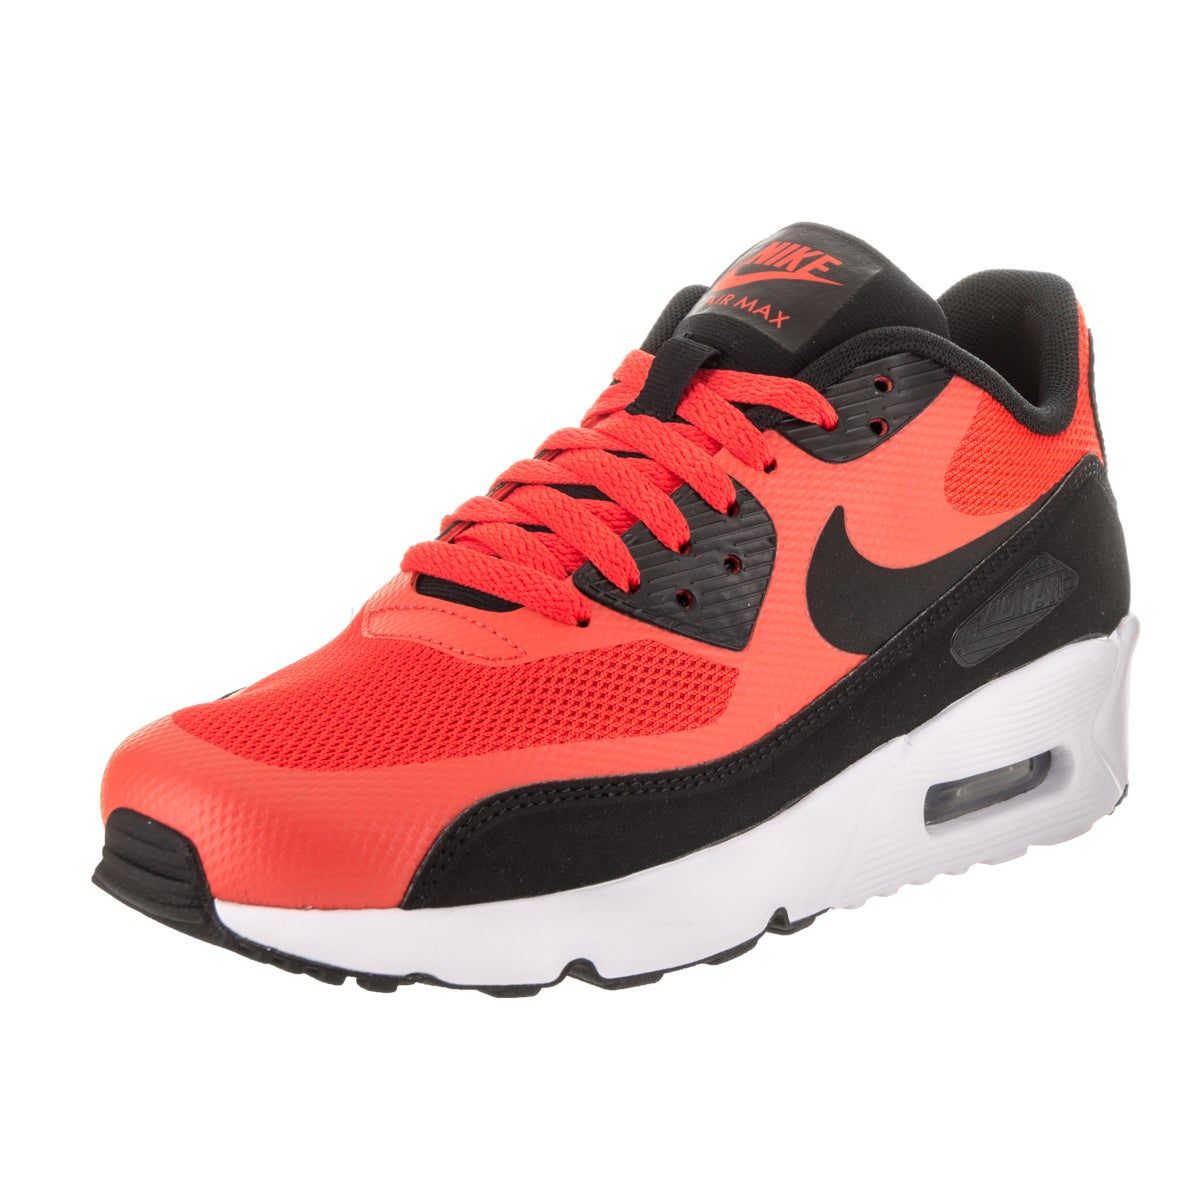 newest 59e14 6b6a8 Shop Shop Nike Clothing   Shoes   Discover our Best Deals at Overstock